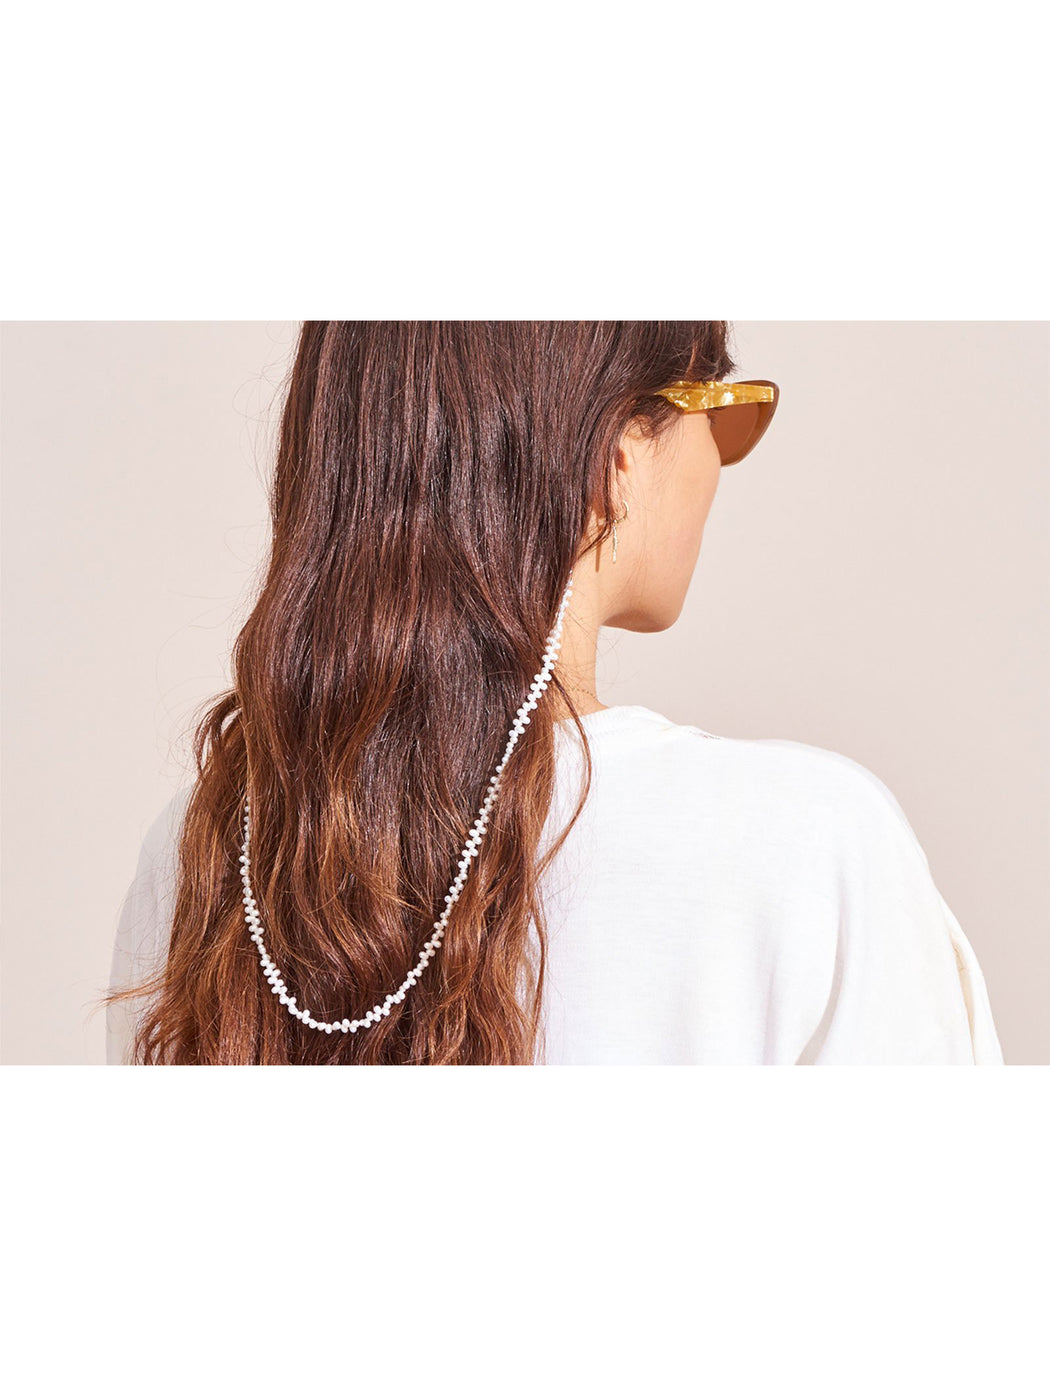 Hang Loose Eyewear Chain